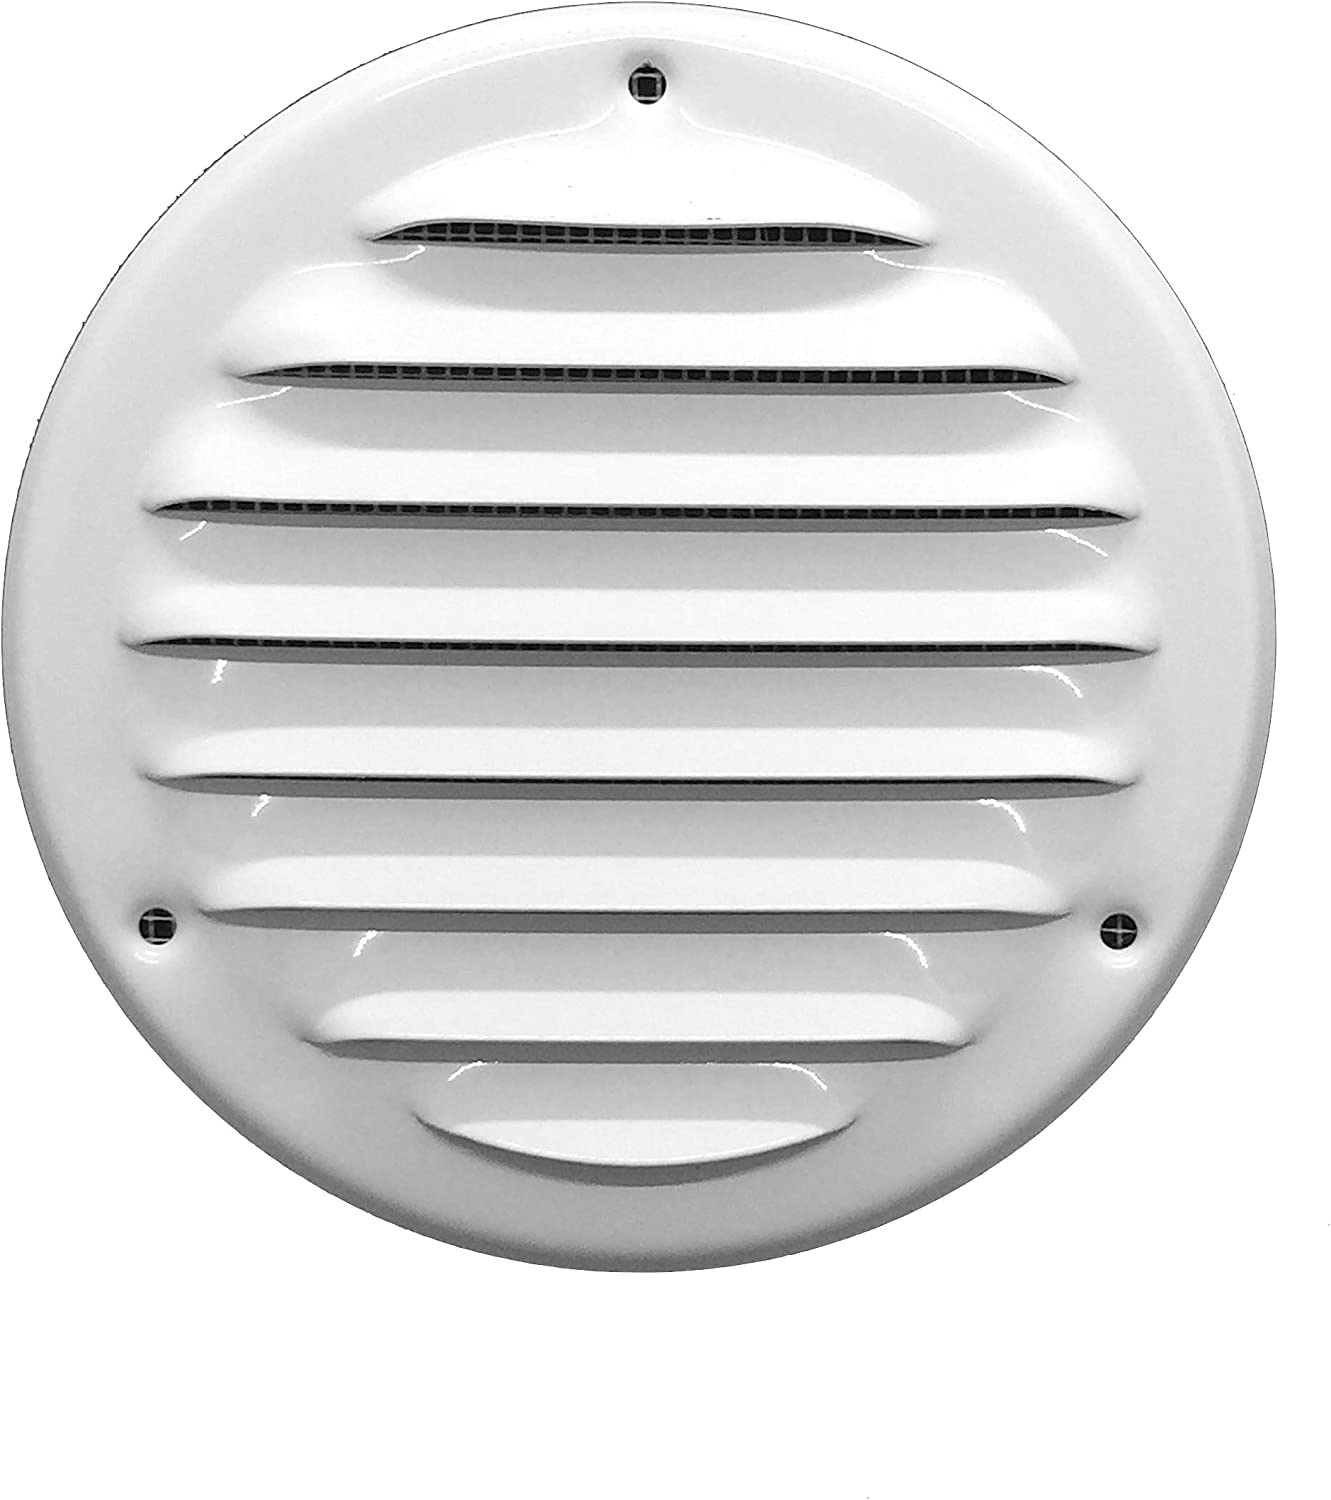 Vent Cover - Round Soffit Vent - Air Vent Louver - Grille Cover - Built-in Fly Screen Mesh - HVAC Ventilation (8'' Inch, Metal - White)